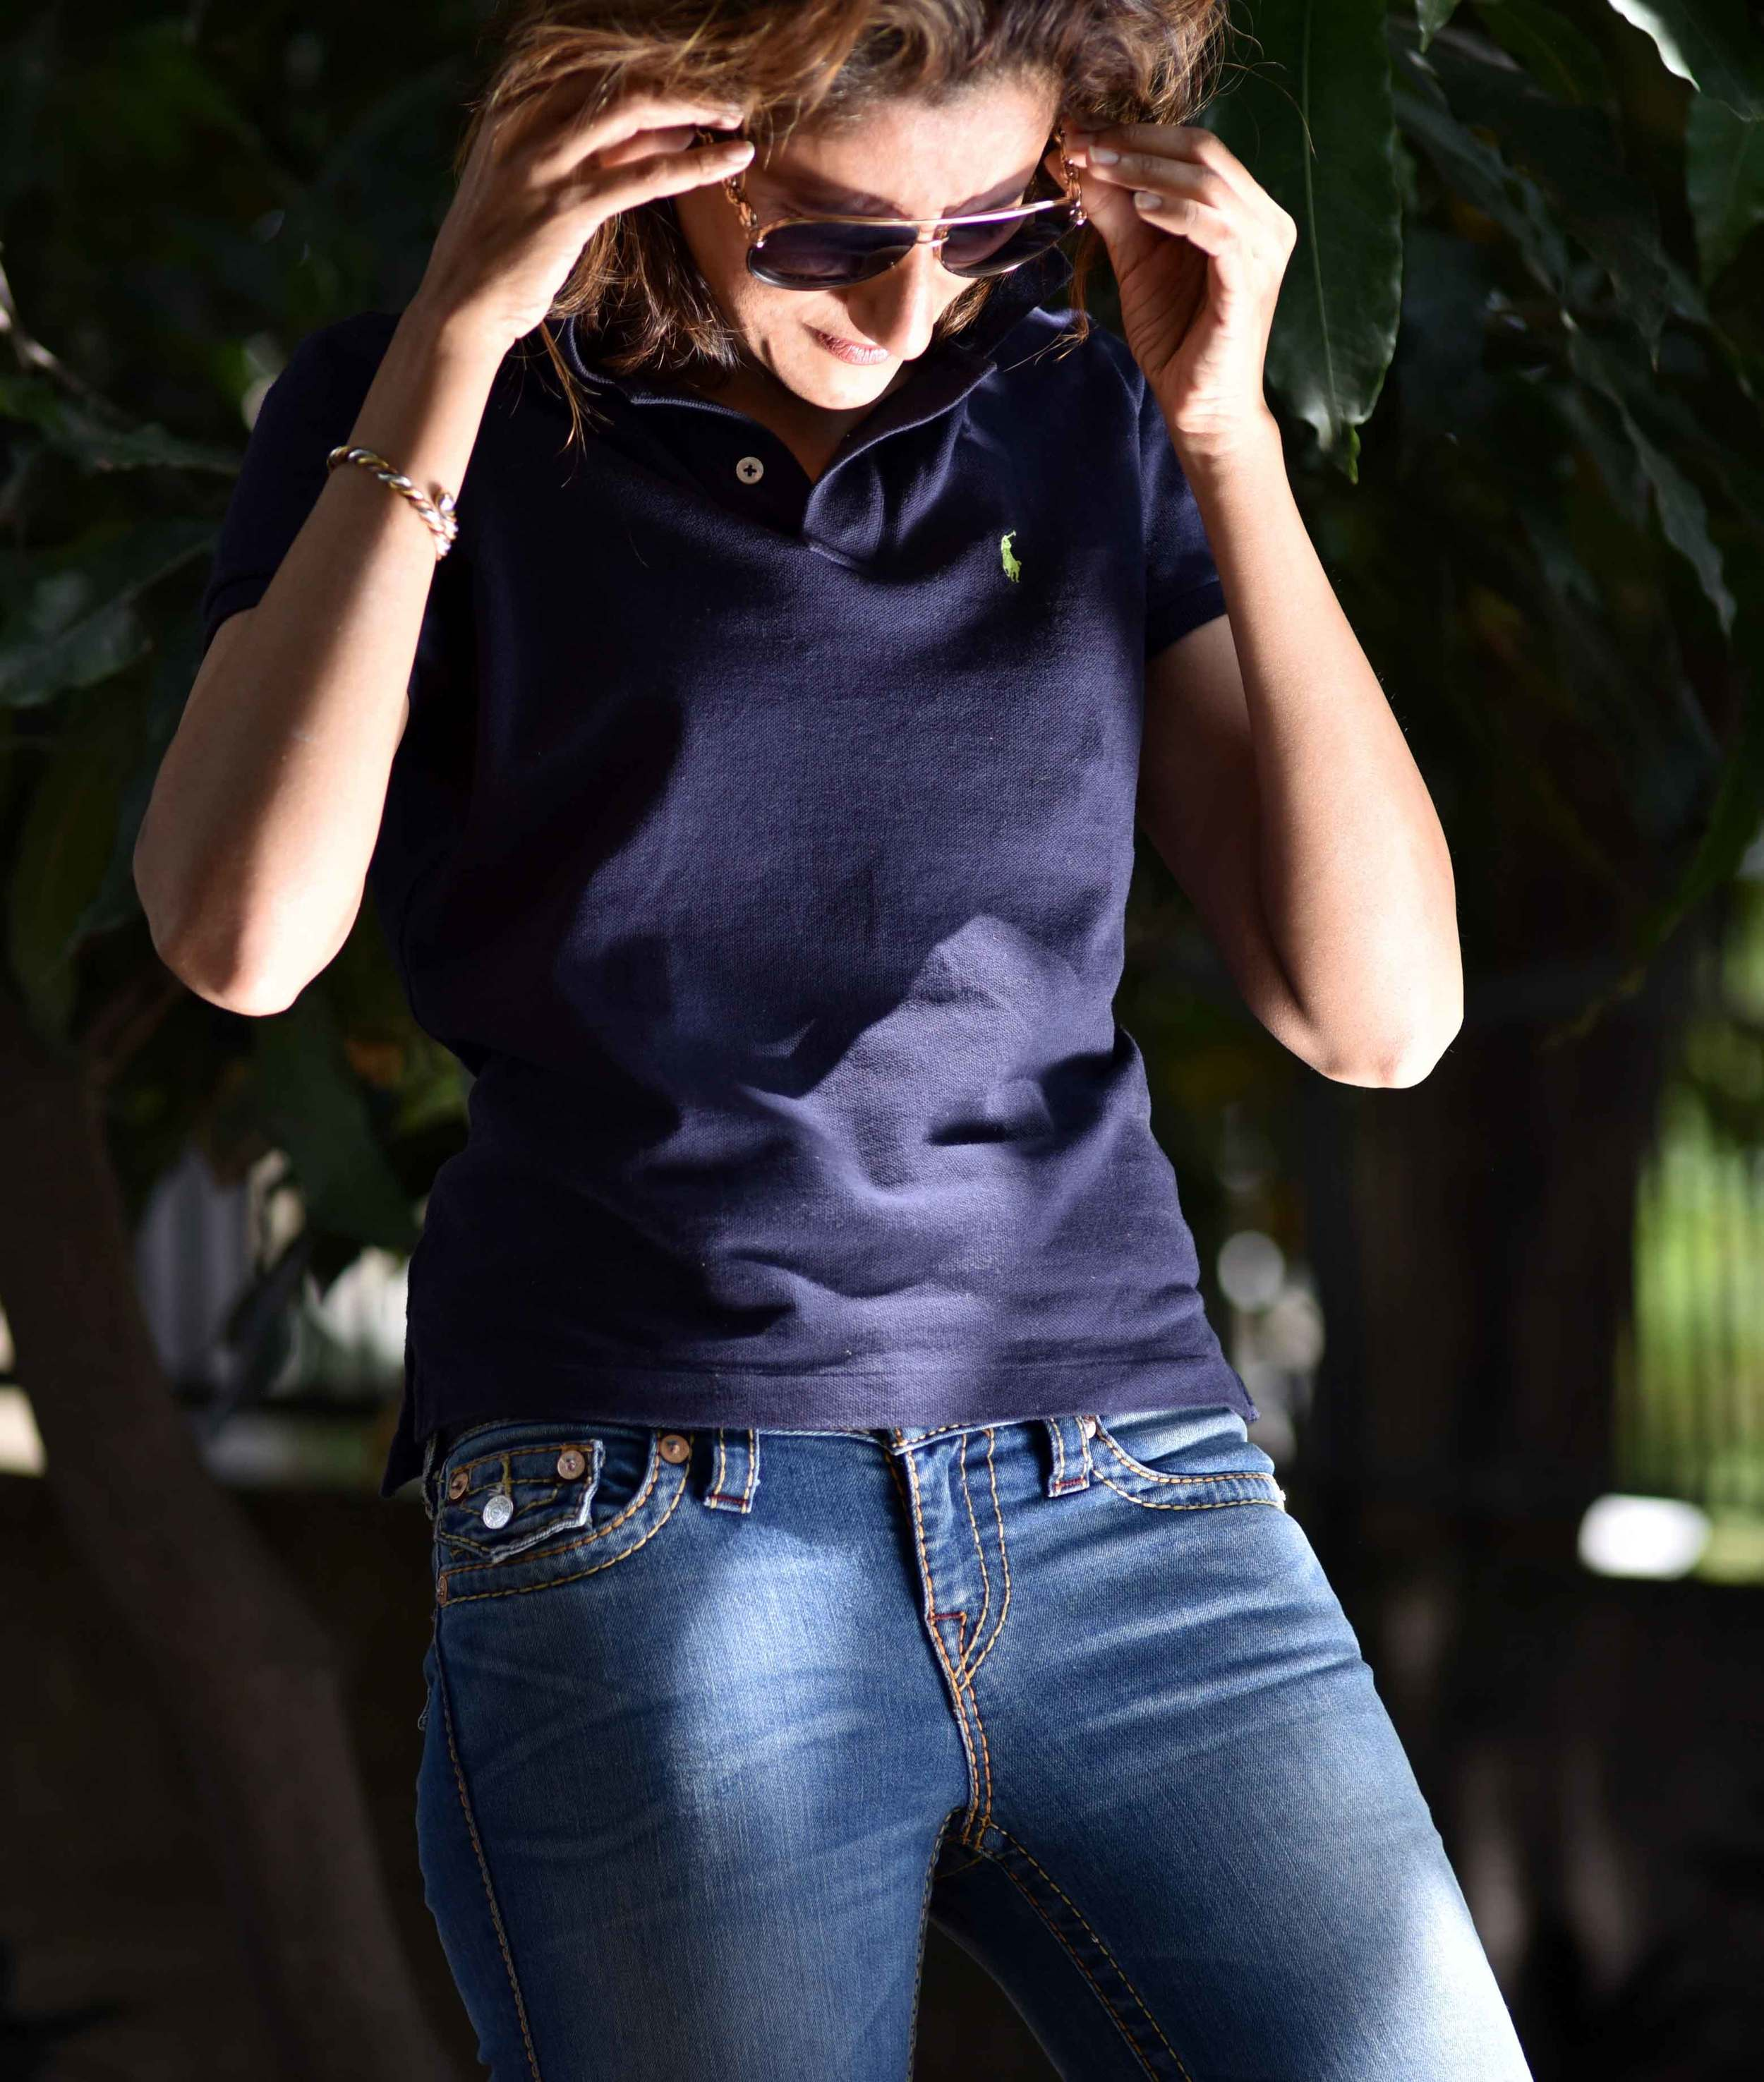 Ralph Lauren Skinny Polo, size M (I am a US size 2 on top) with True Religion Jeans and my Gucci shades. Image©gunjanvirk